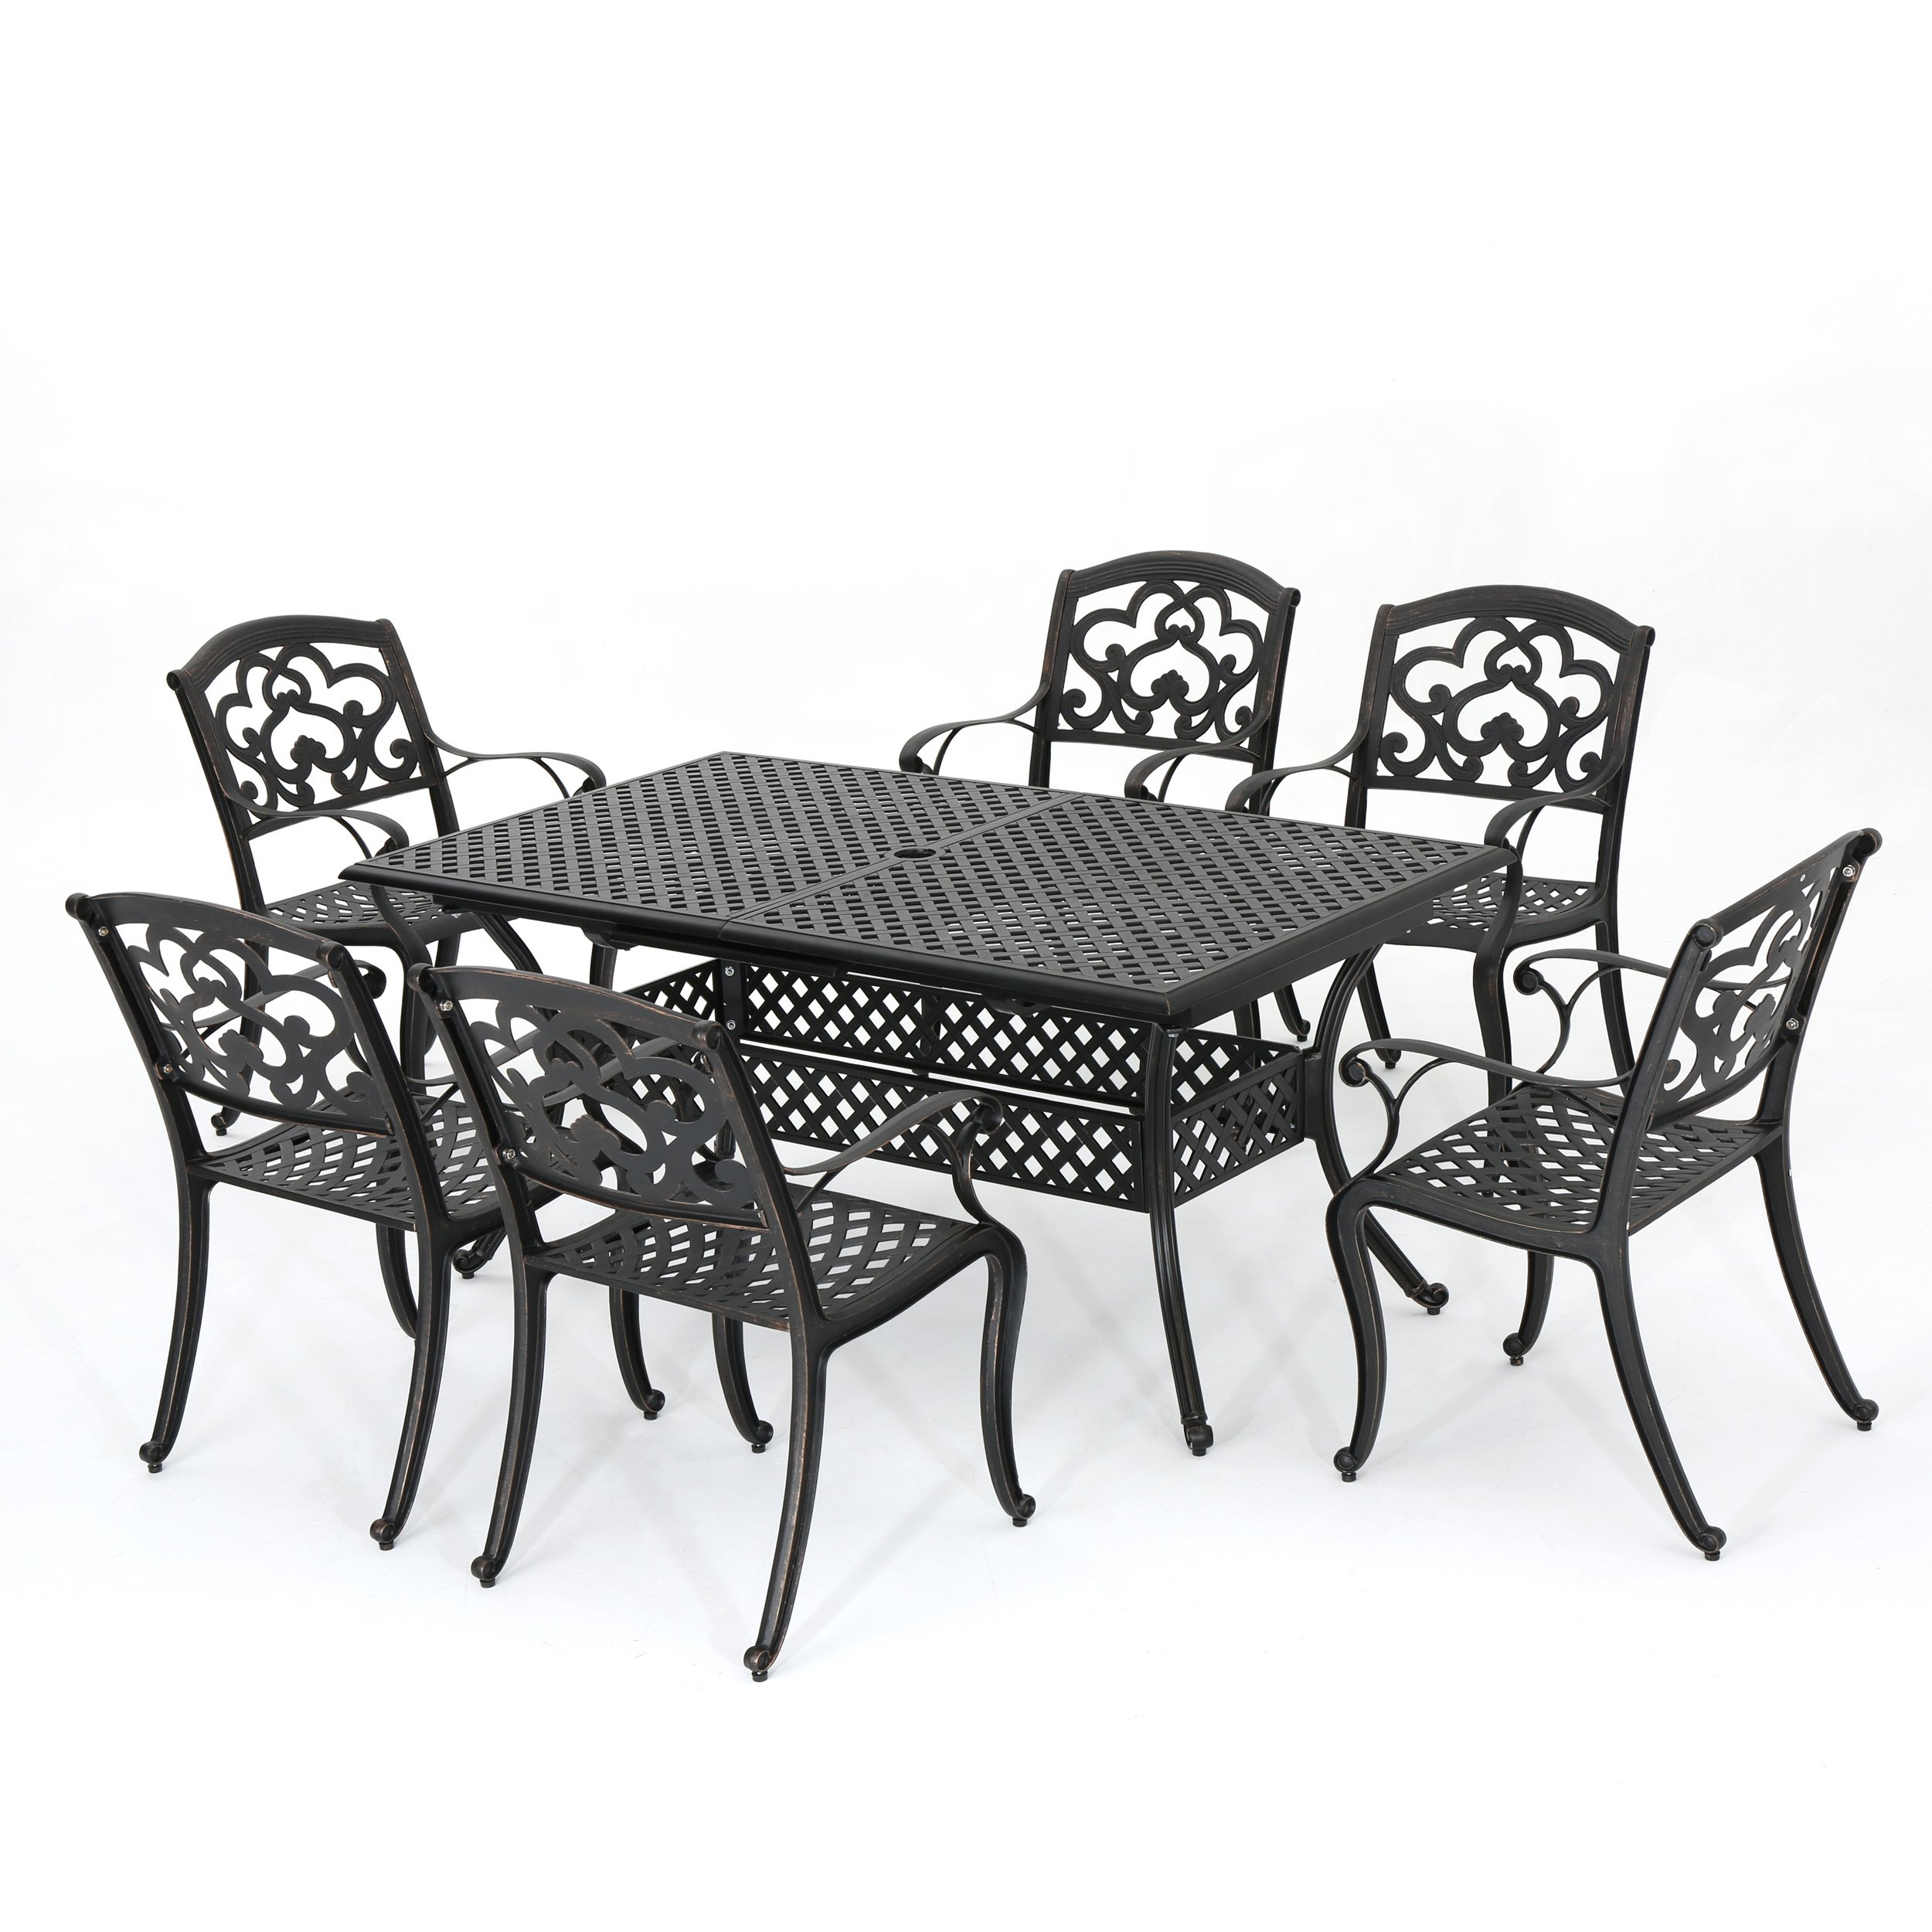 Dining Table With Three Extension Leaves And Six Matching: GDF Studio 300679 Ariel Outdoor 7 Pc Cast Aluminum Dining